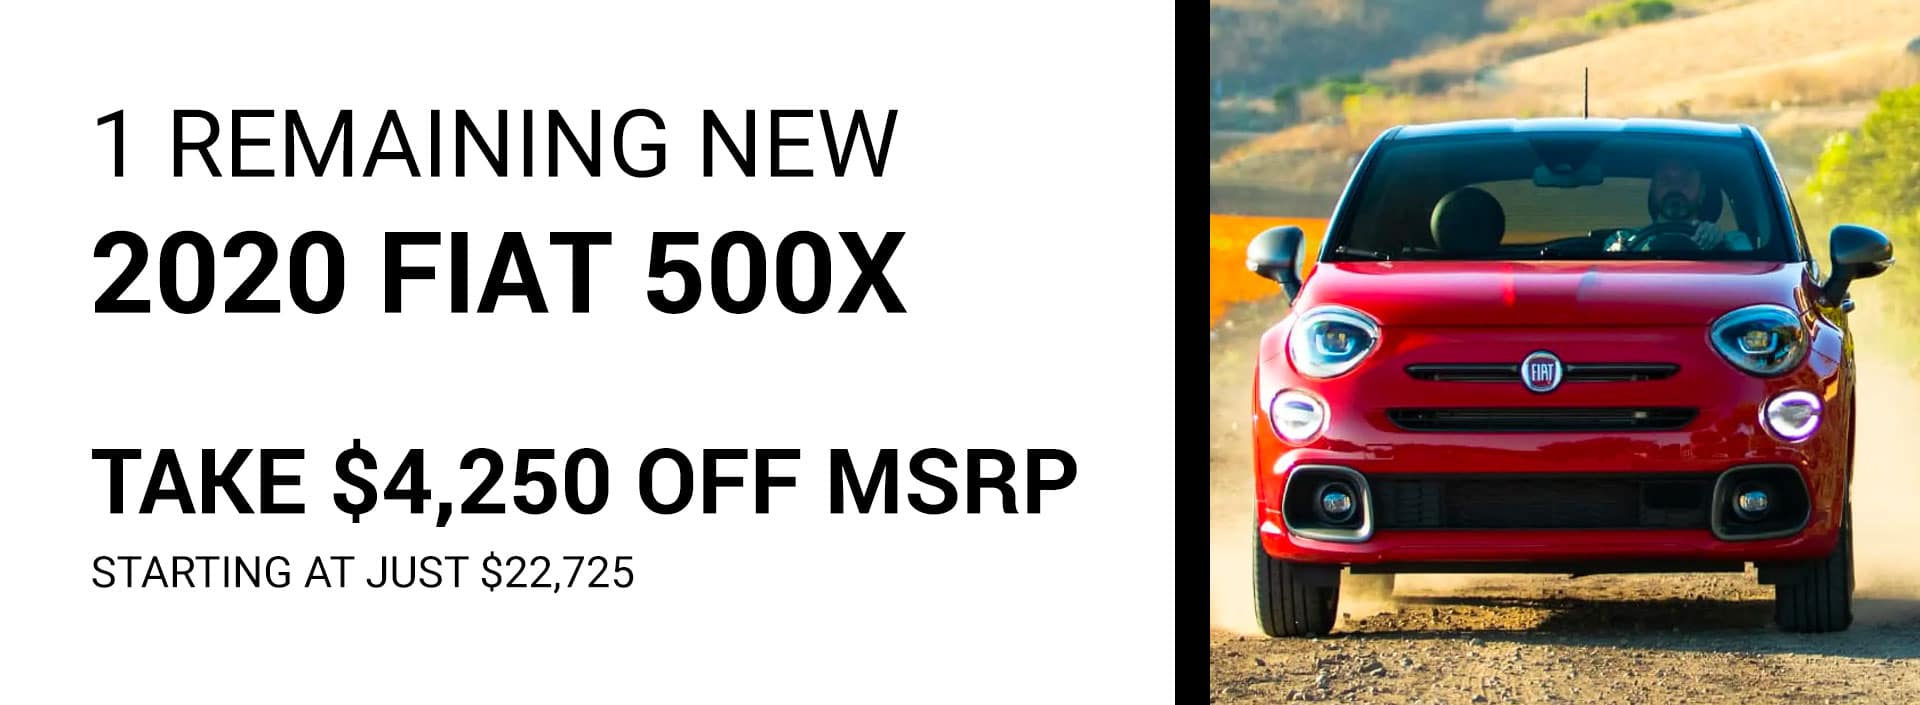 1 Remaining New 2020 FIAT 500X Take $4250 OFF MSRP Starting at JUST $22,725